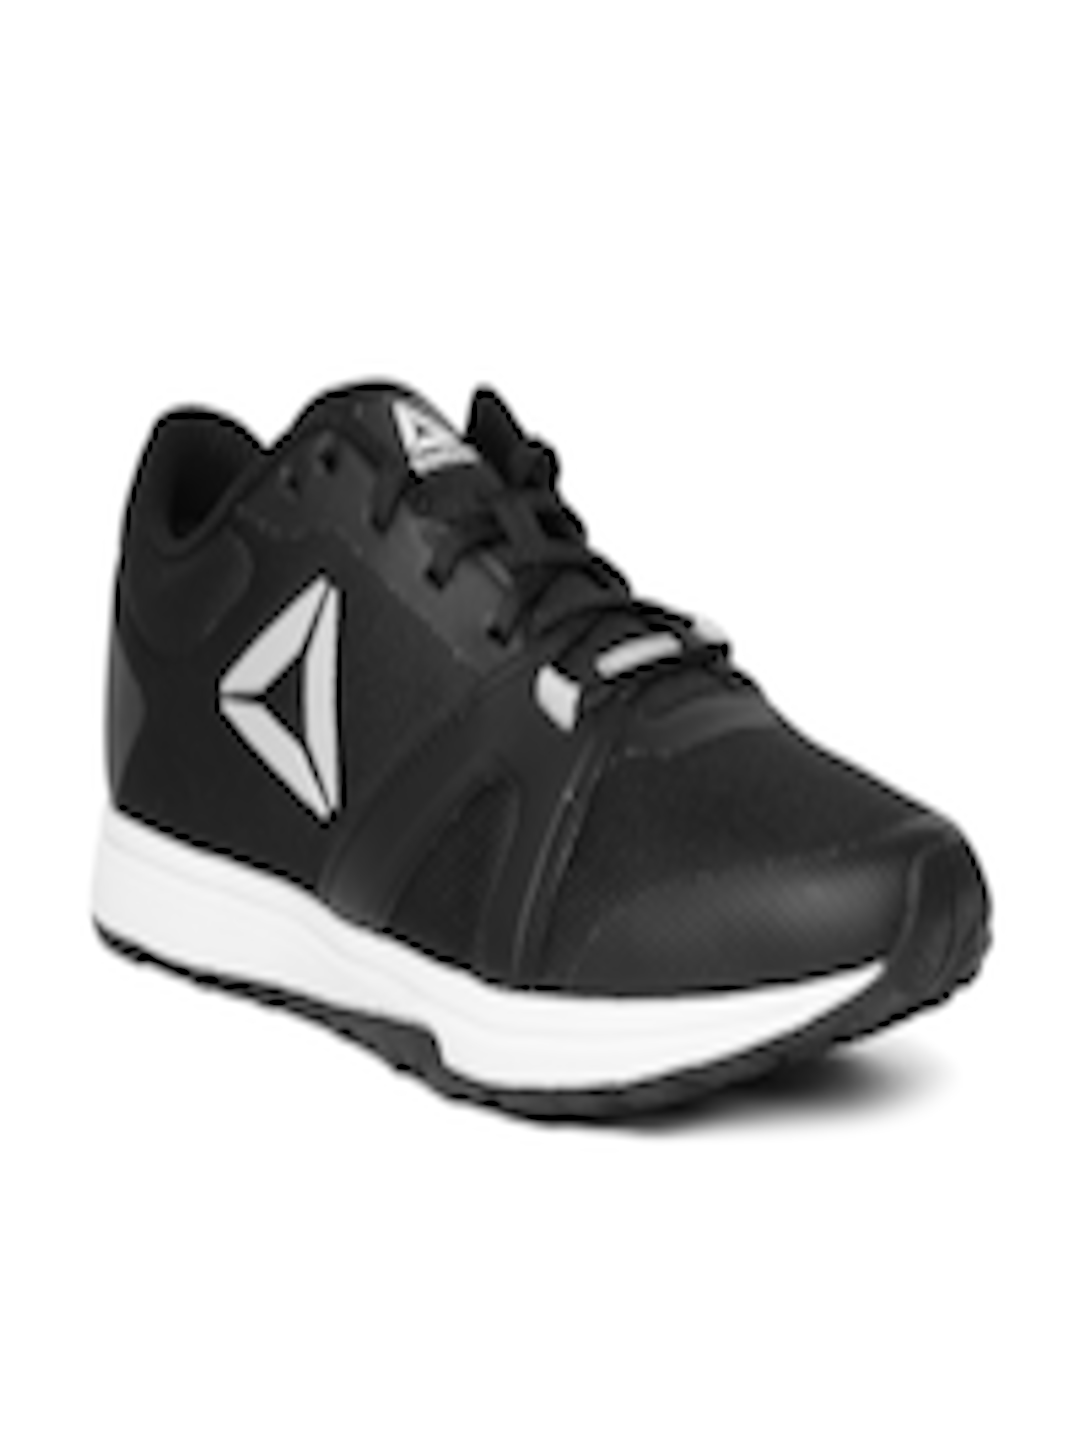 c0cda5dc936 Buy Reebok Men Black MIGHTY TRAINER Shoes - Sports Shoes for Men 2404075